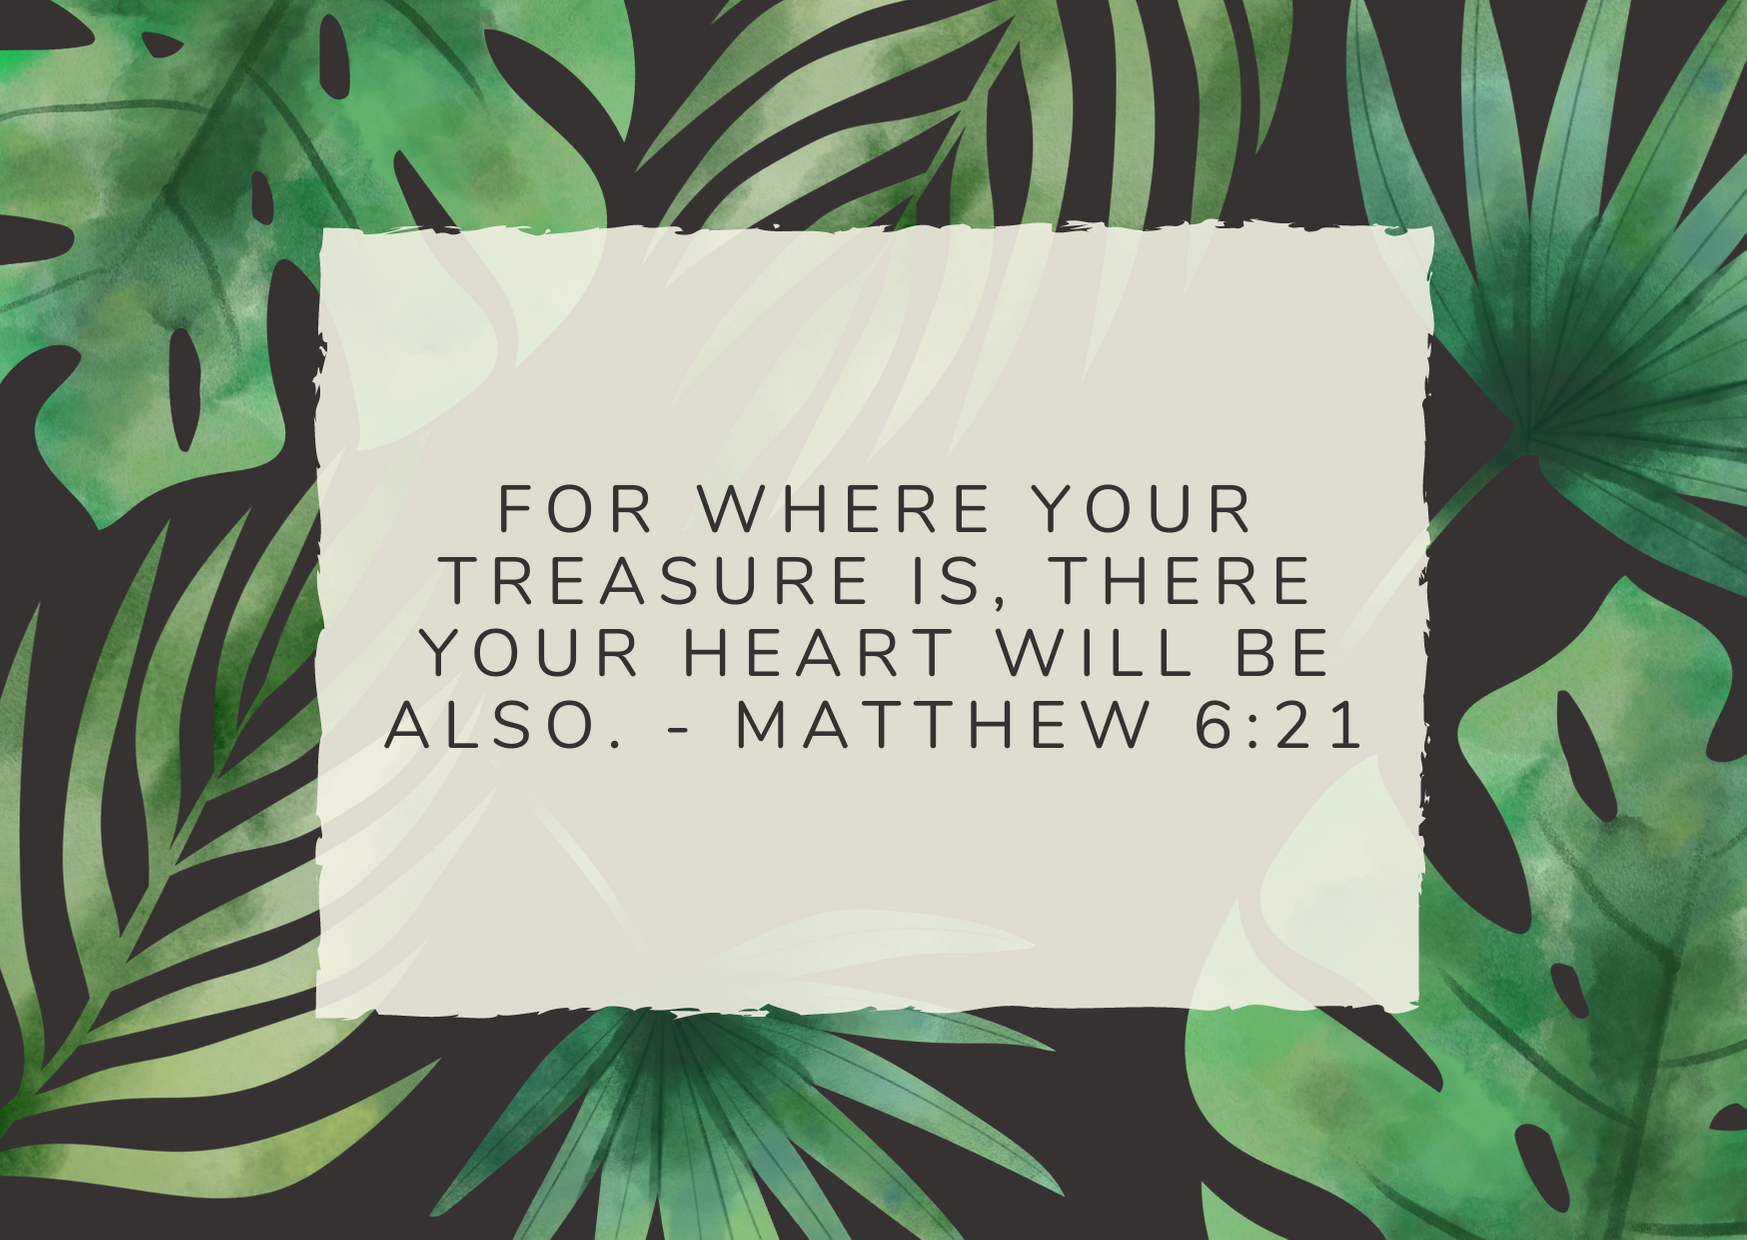 For where your treasure is, there your heart will be also. - Matthew 6:21